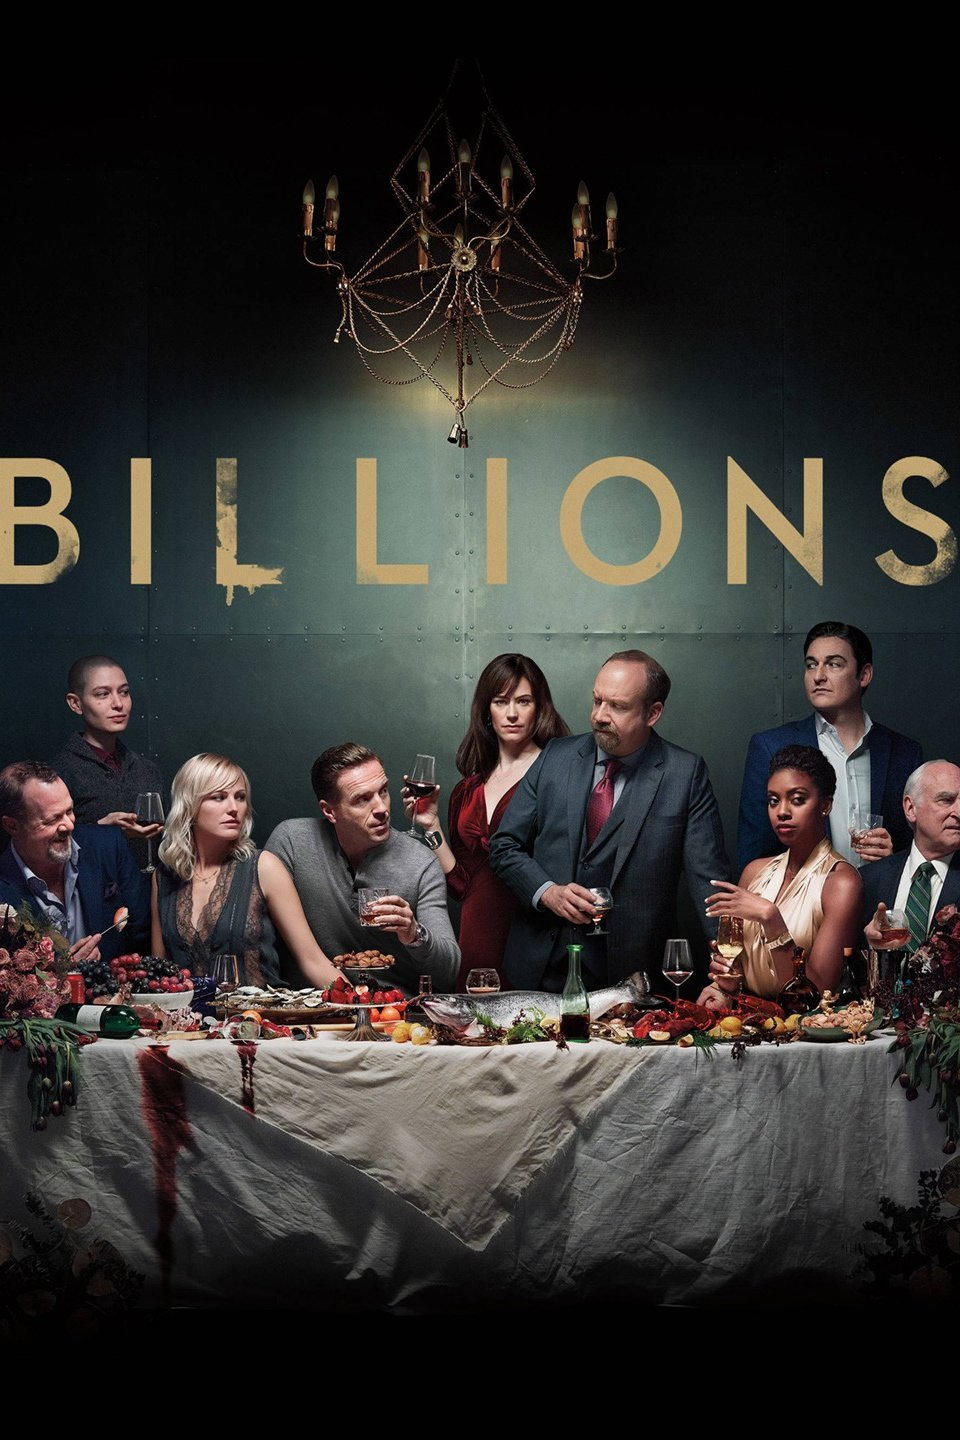 Billions season 3 - Chuck Rhoades and Bobby Axelrod find themselves in a world that has shifted on its axis. The two are still extremely determined to destroy each other. This is available on Amazon Prime.